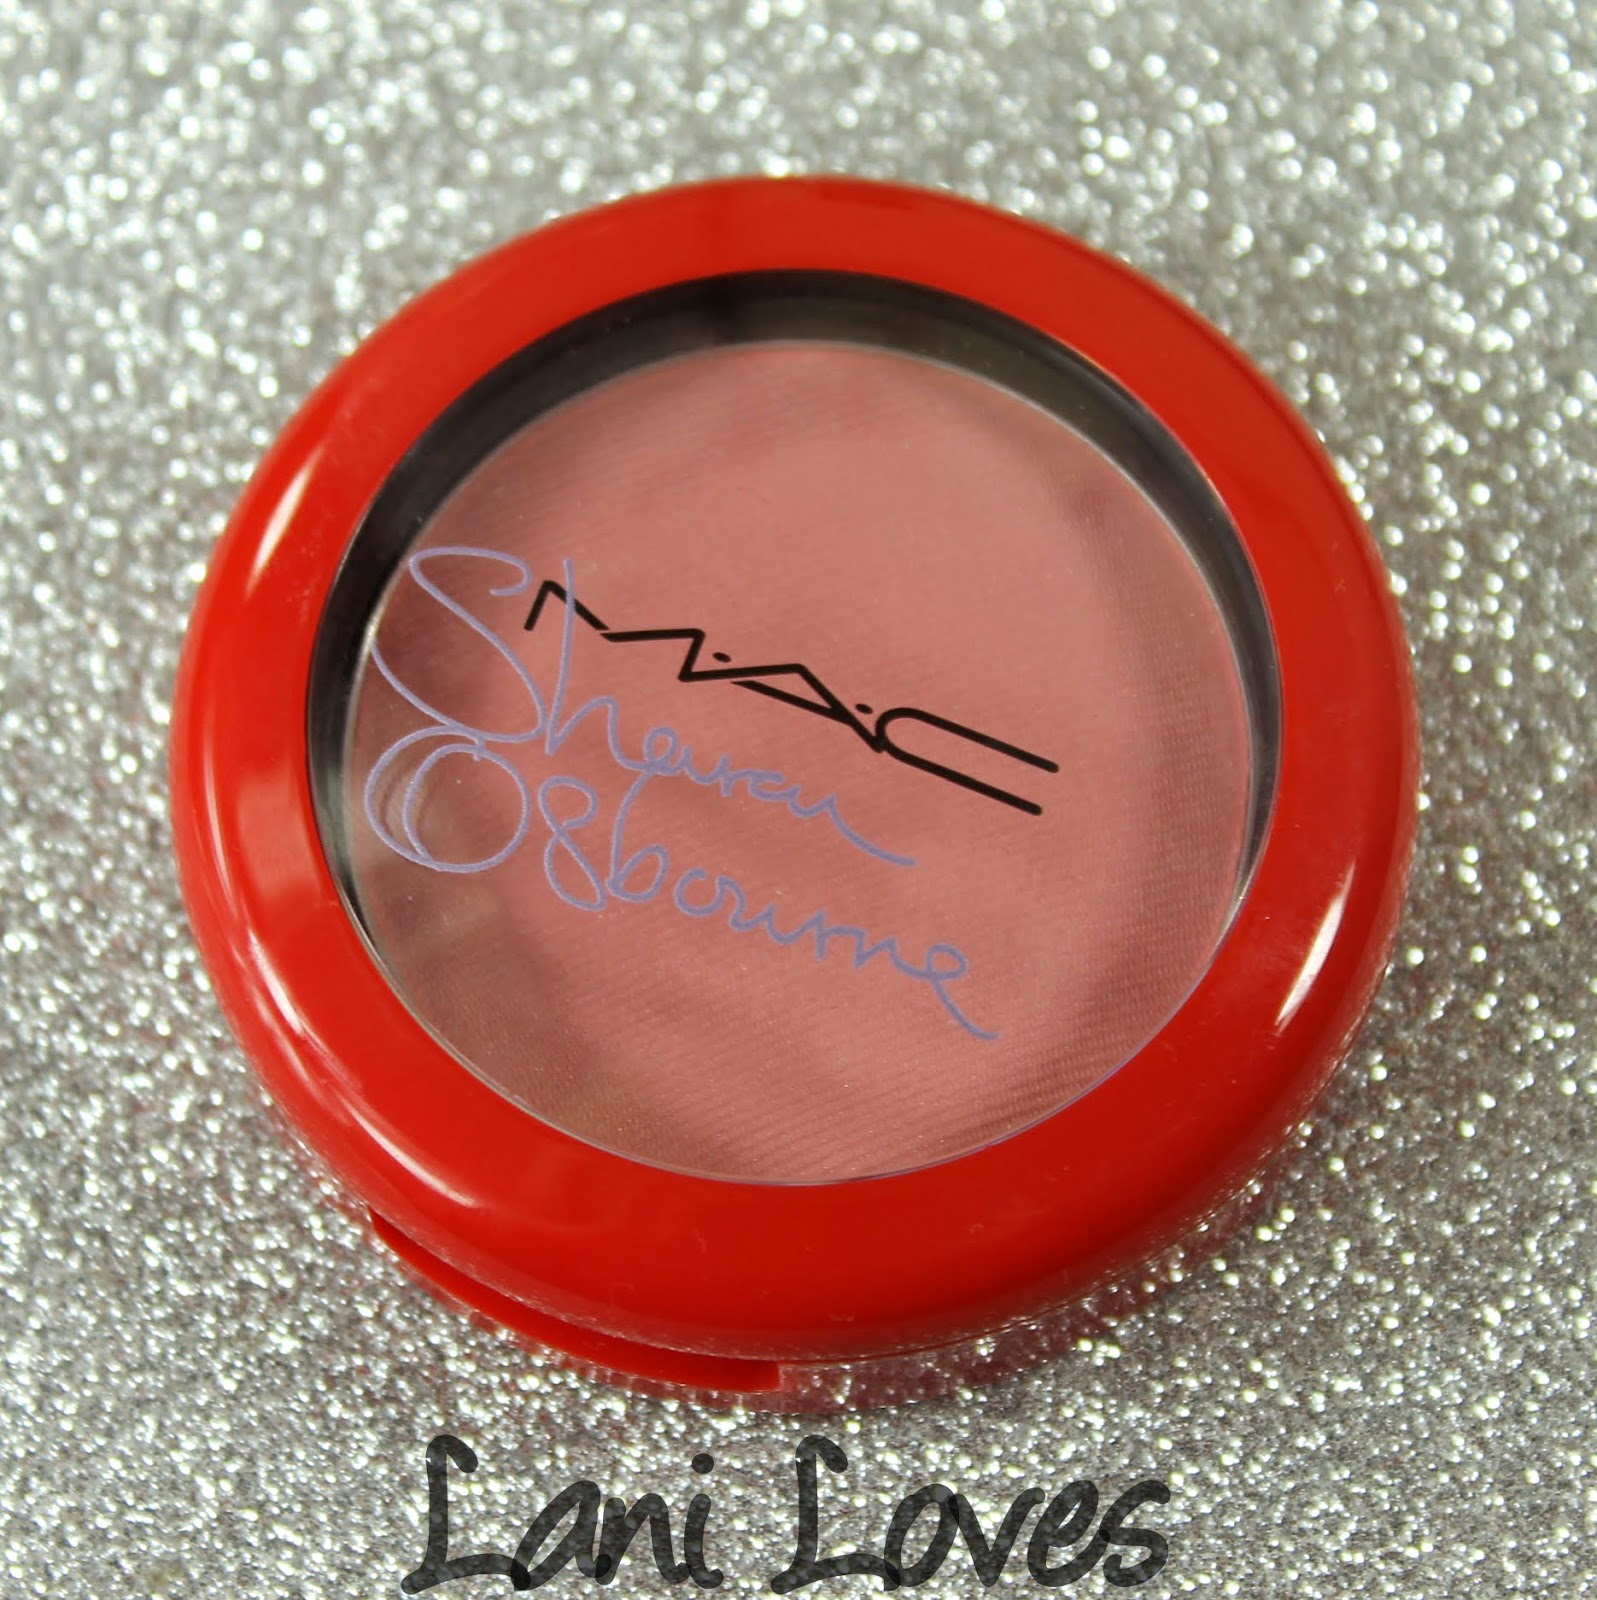 MAC Monday: MAC X Osbournes - Peaches & Cream Swatches & Review